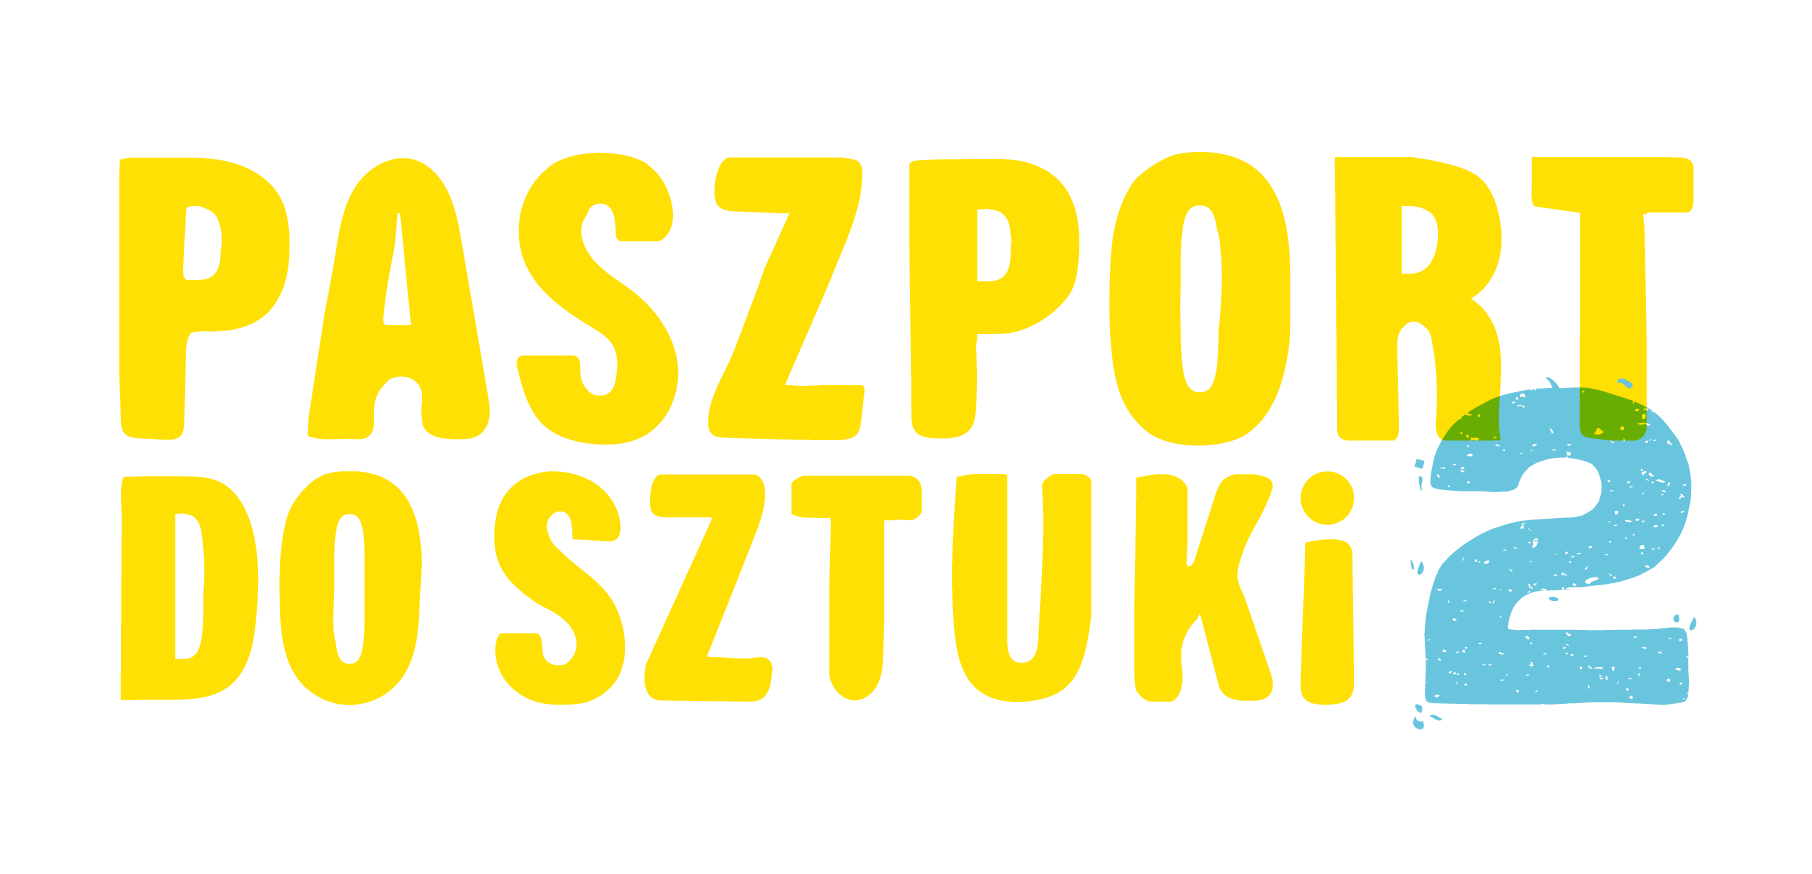 logo projektu Paszport do sztuki